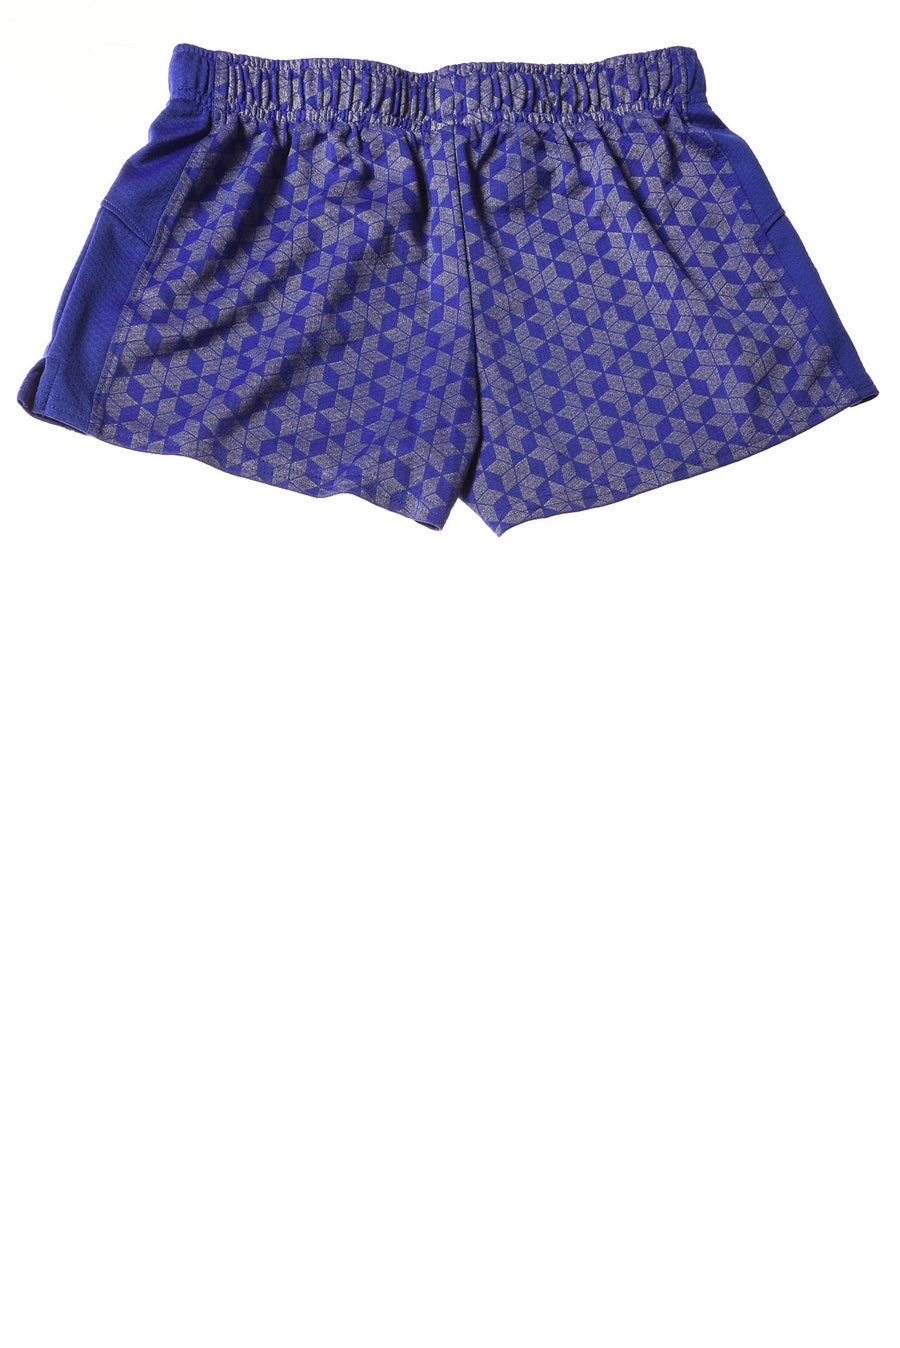 USED Under Armour Girl's Shorts Large Blue